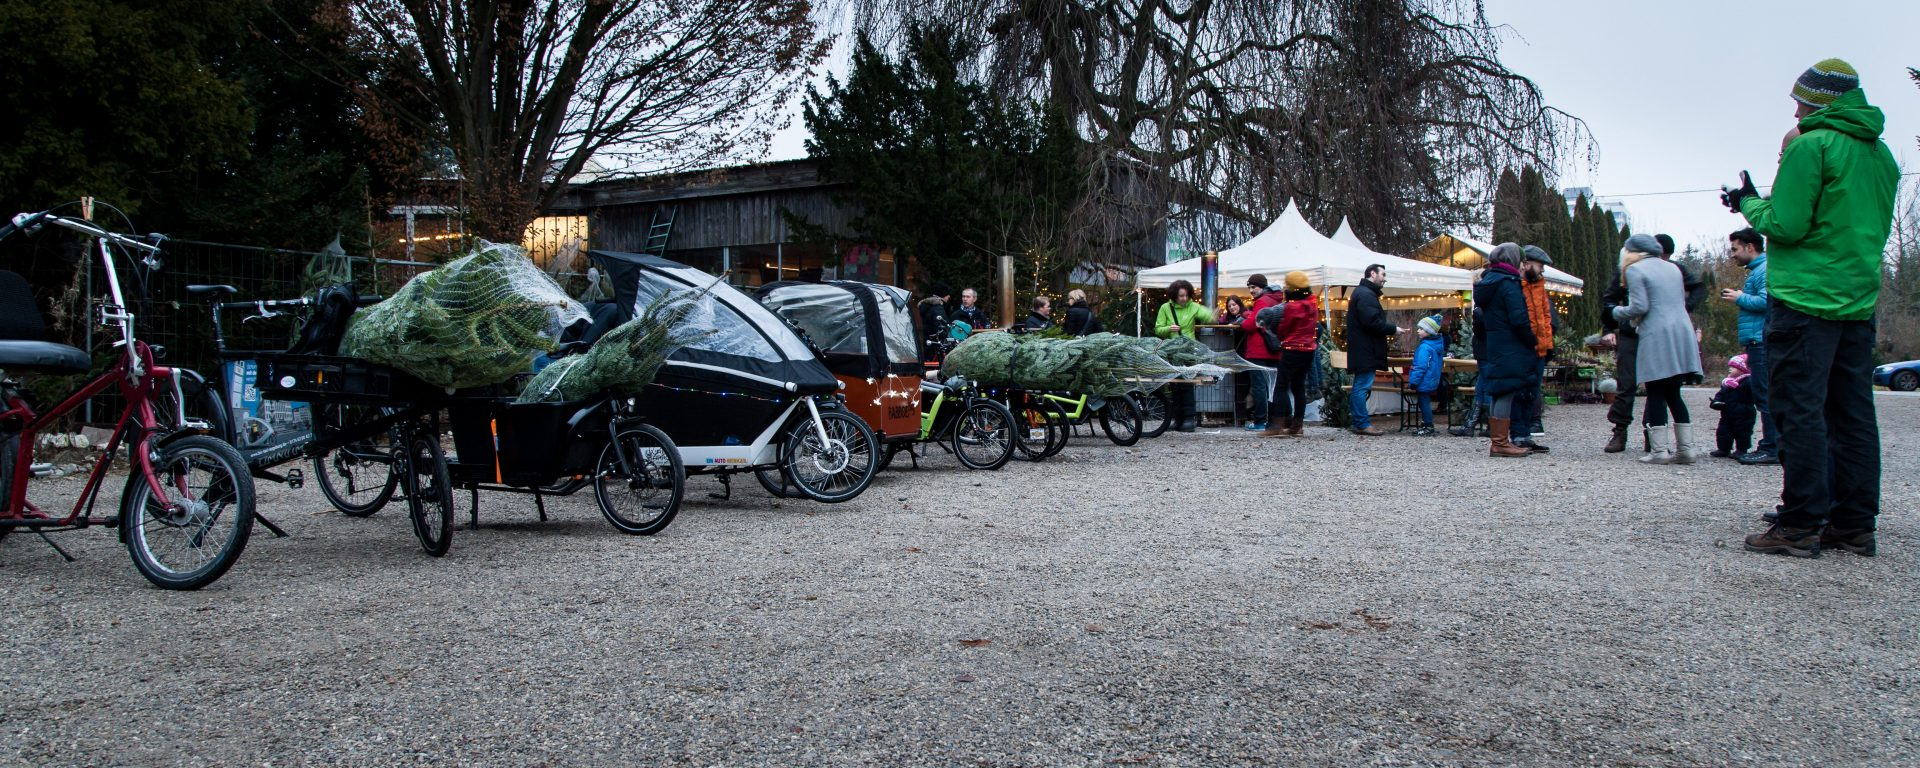 Cargobikes and christmas trees